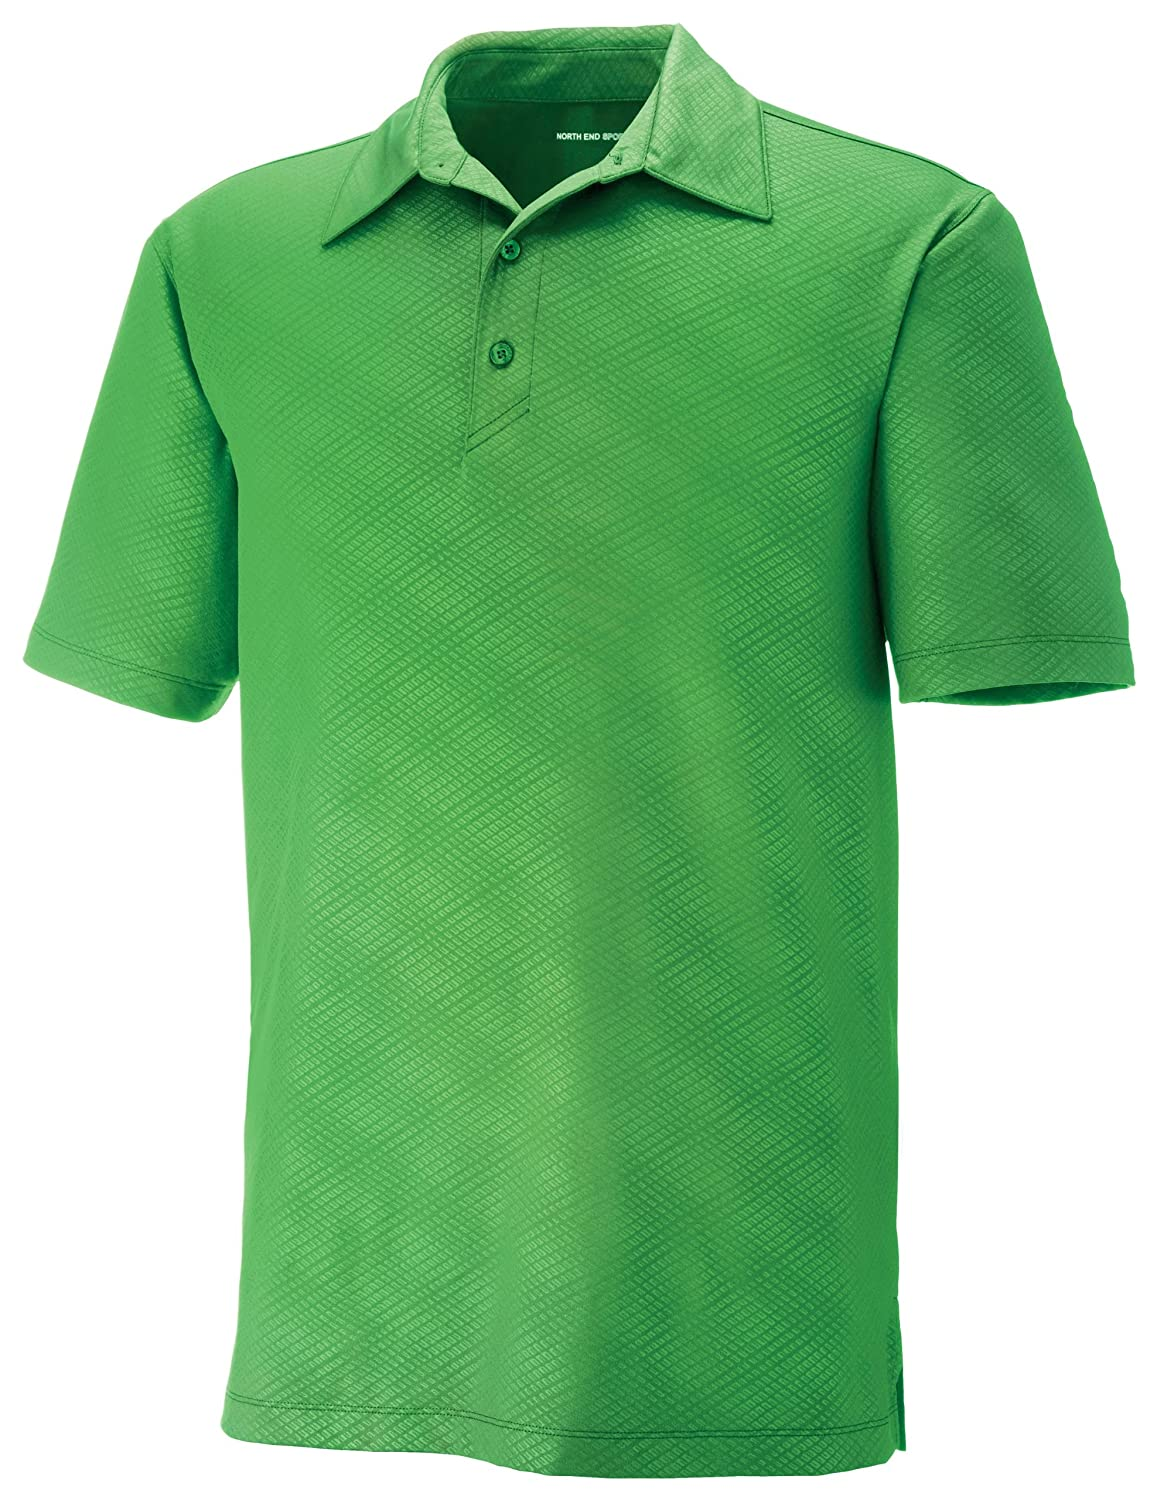 Valley Green XL Mens Maze Mens Performance Stretch Embossed Print Polo Shirt